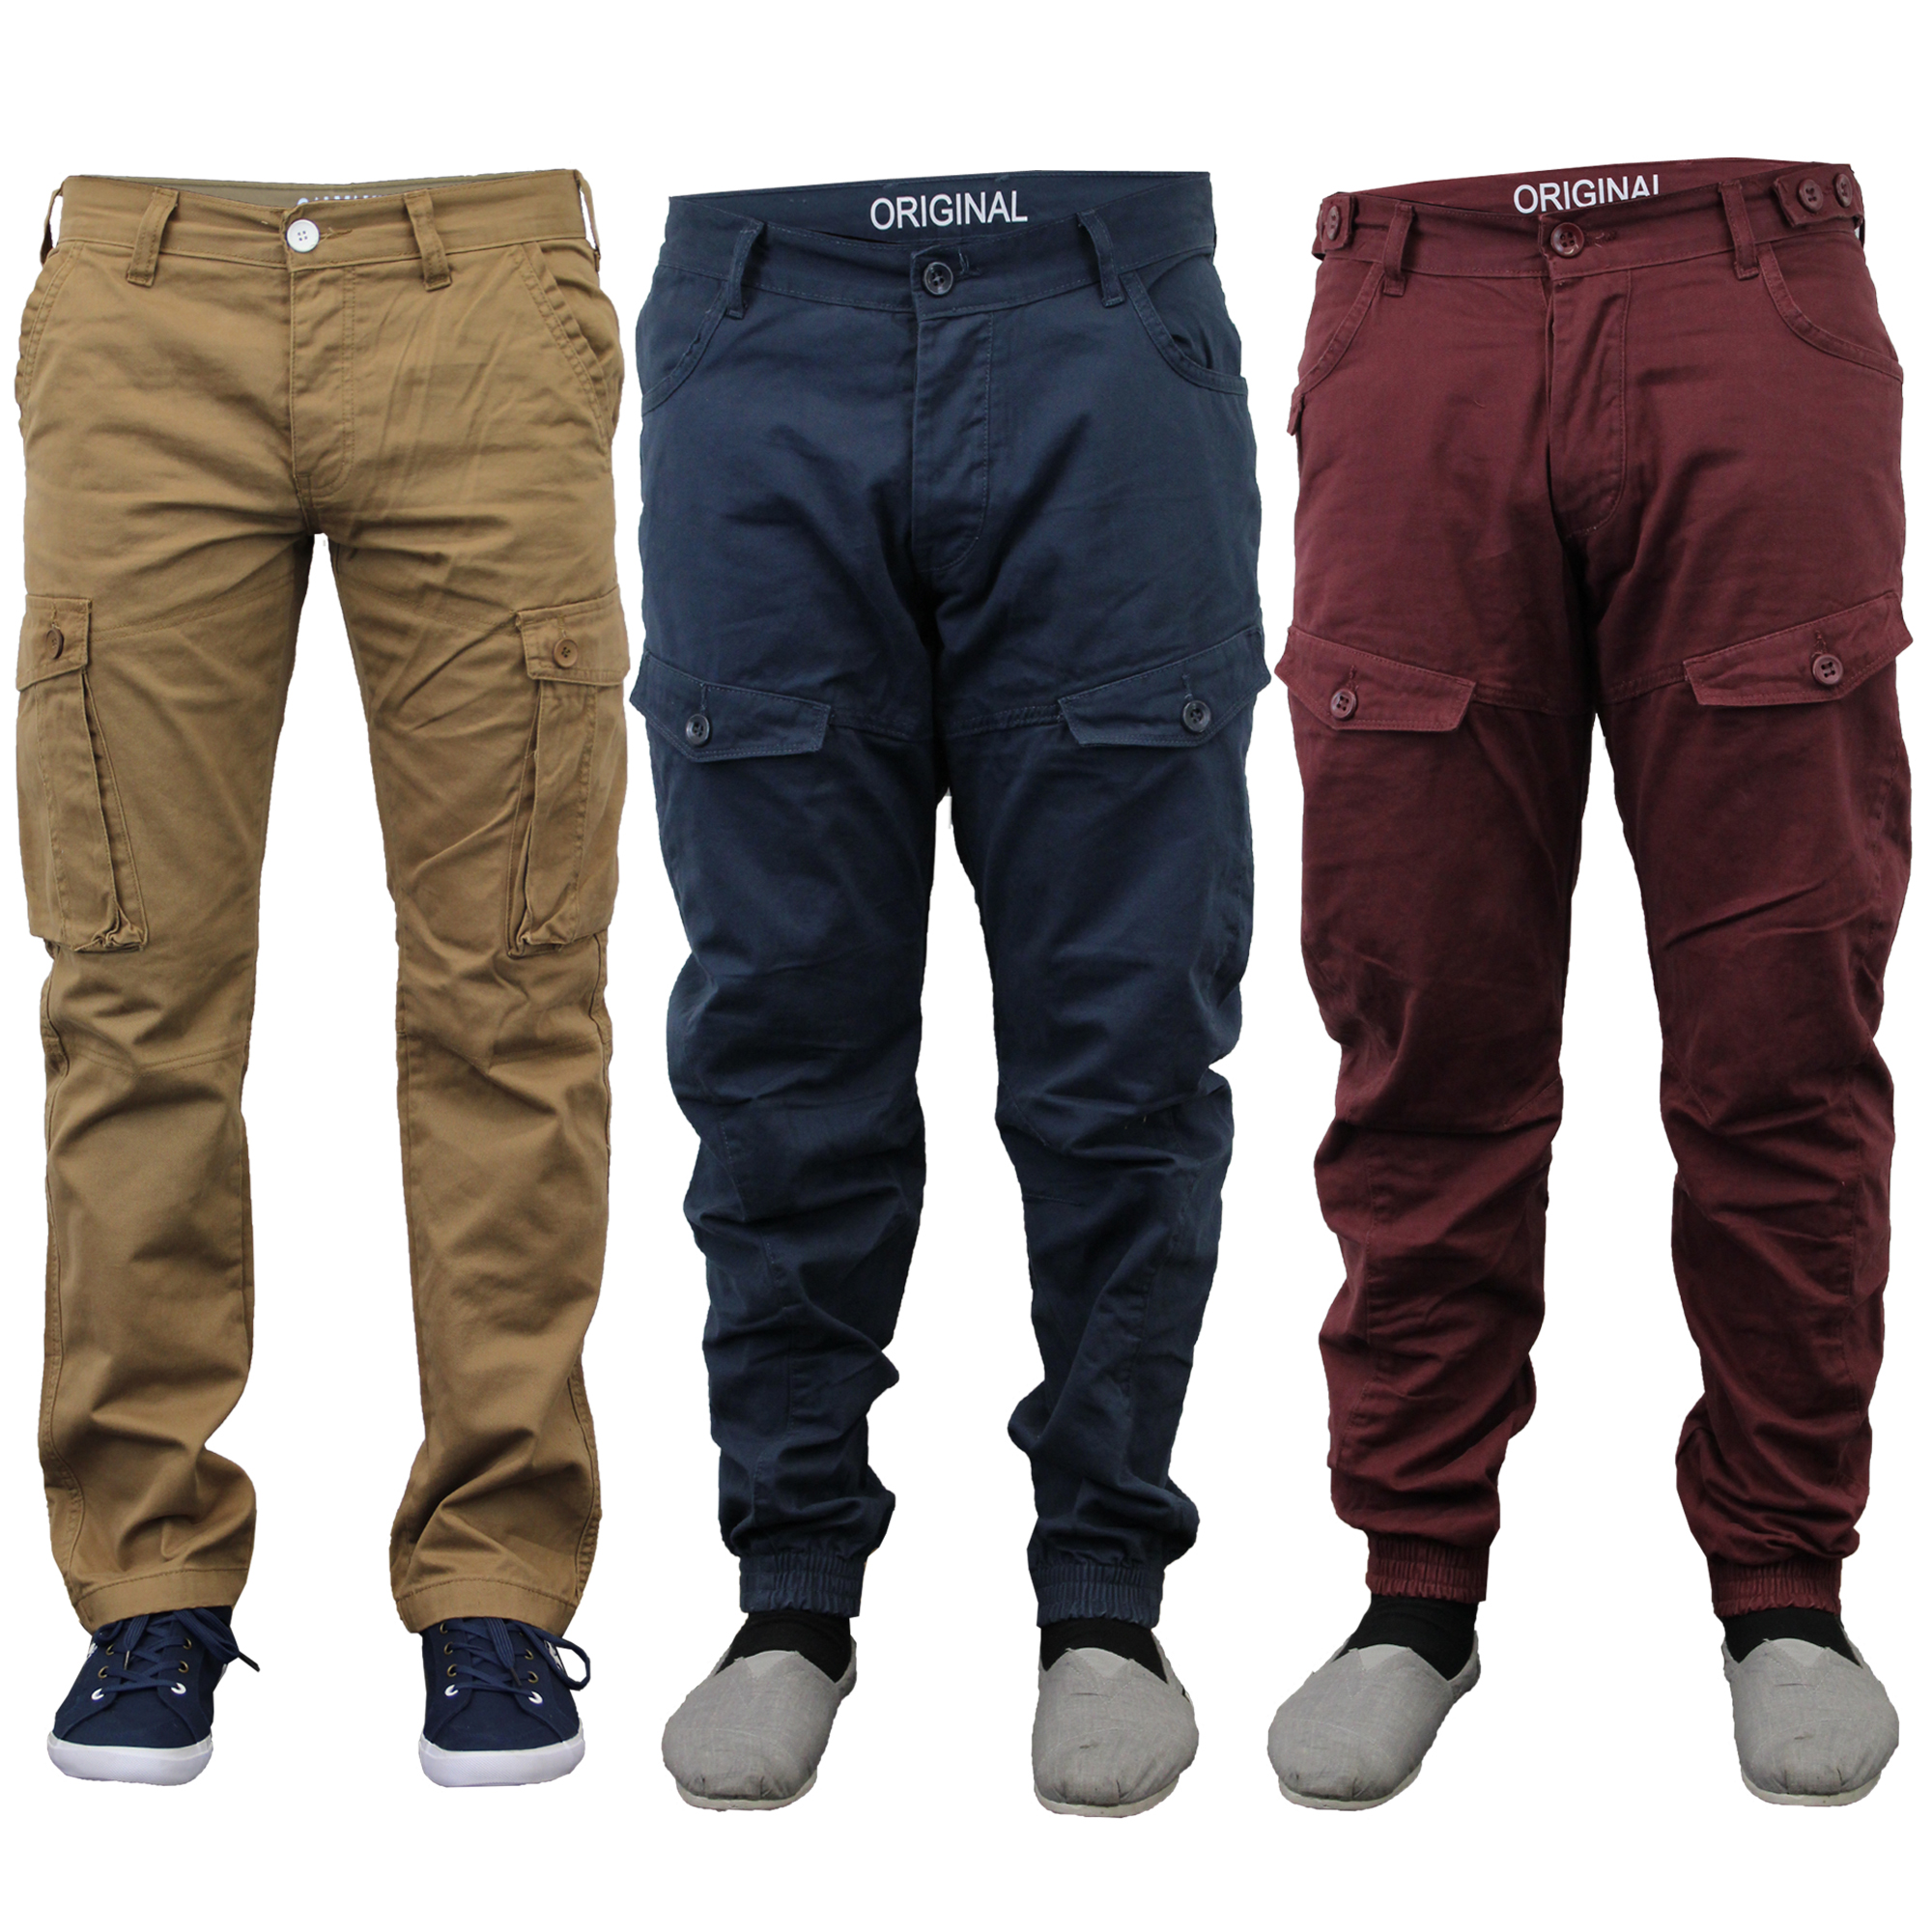 cargo jeans mens-jeans-chino-style-cargo-pants-denim-cuffed- osjkmrm